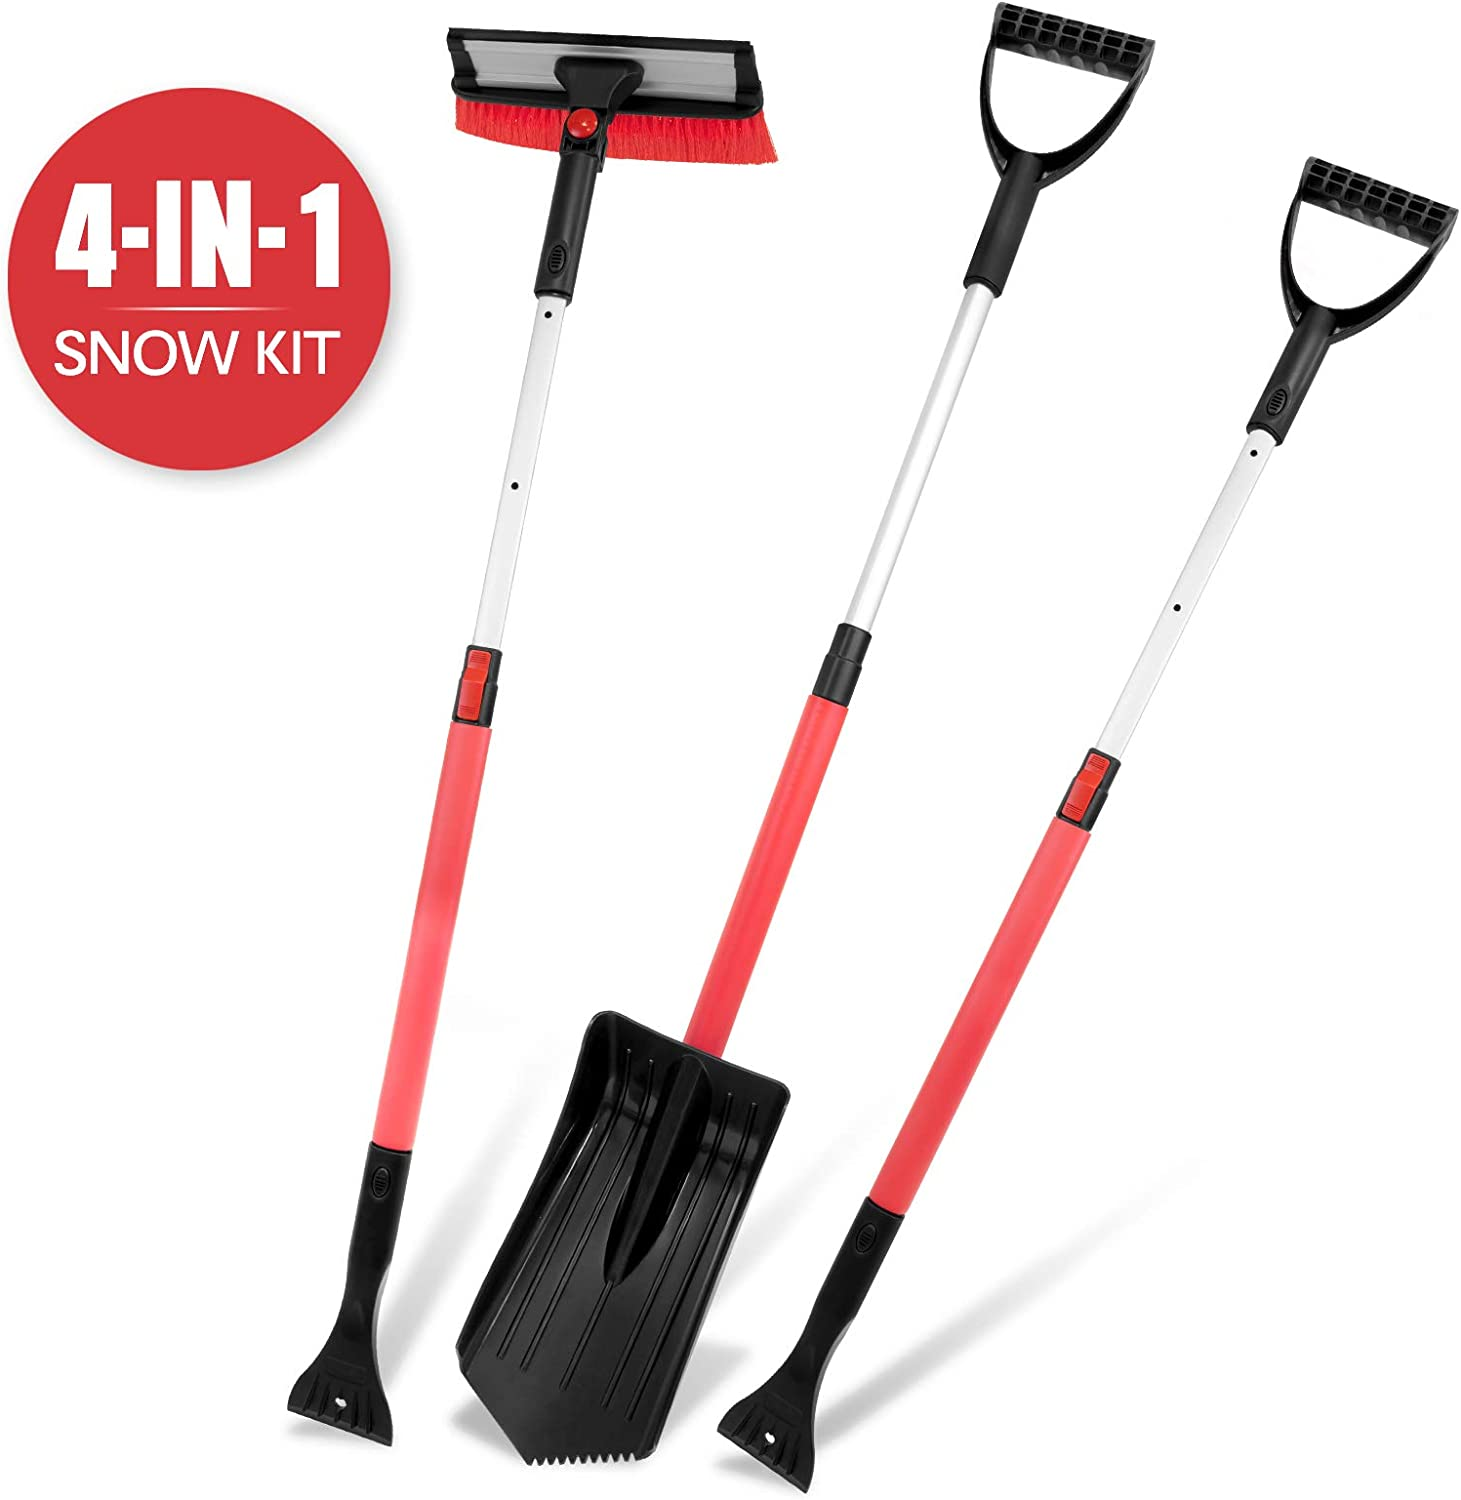 Amazon Promo Code for 4-in-1 Snow Shovel Kit with Portable Snow Shovel